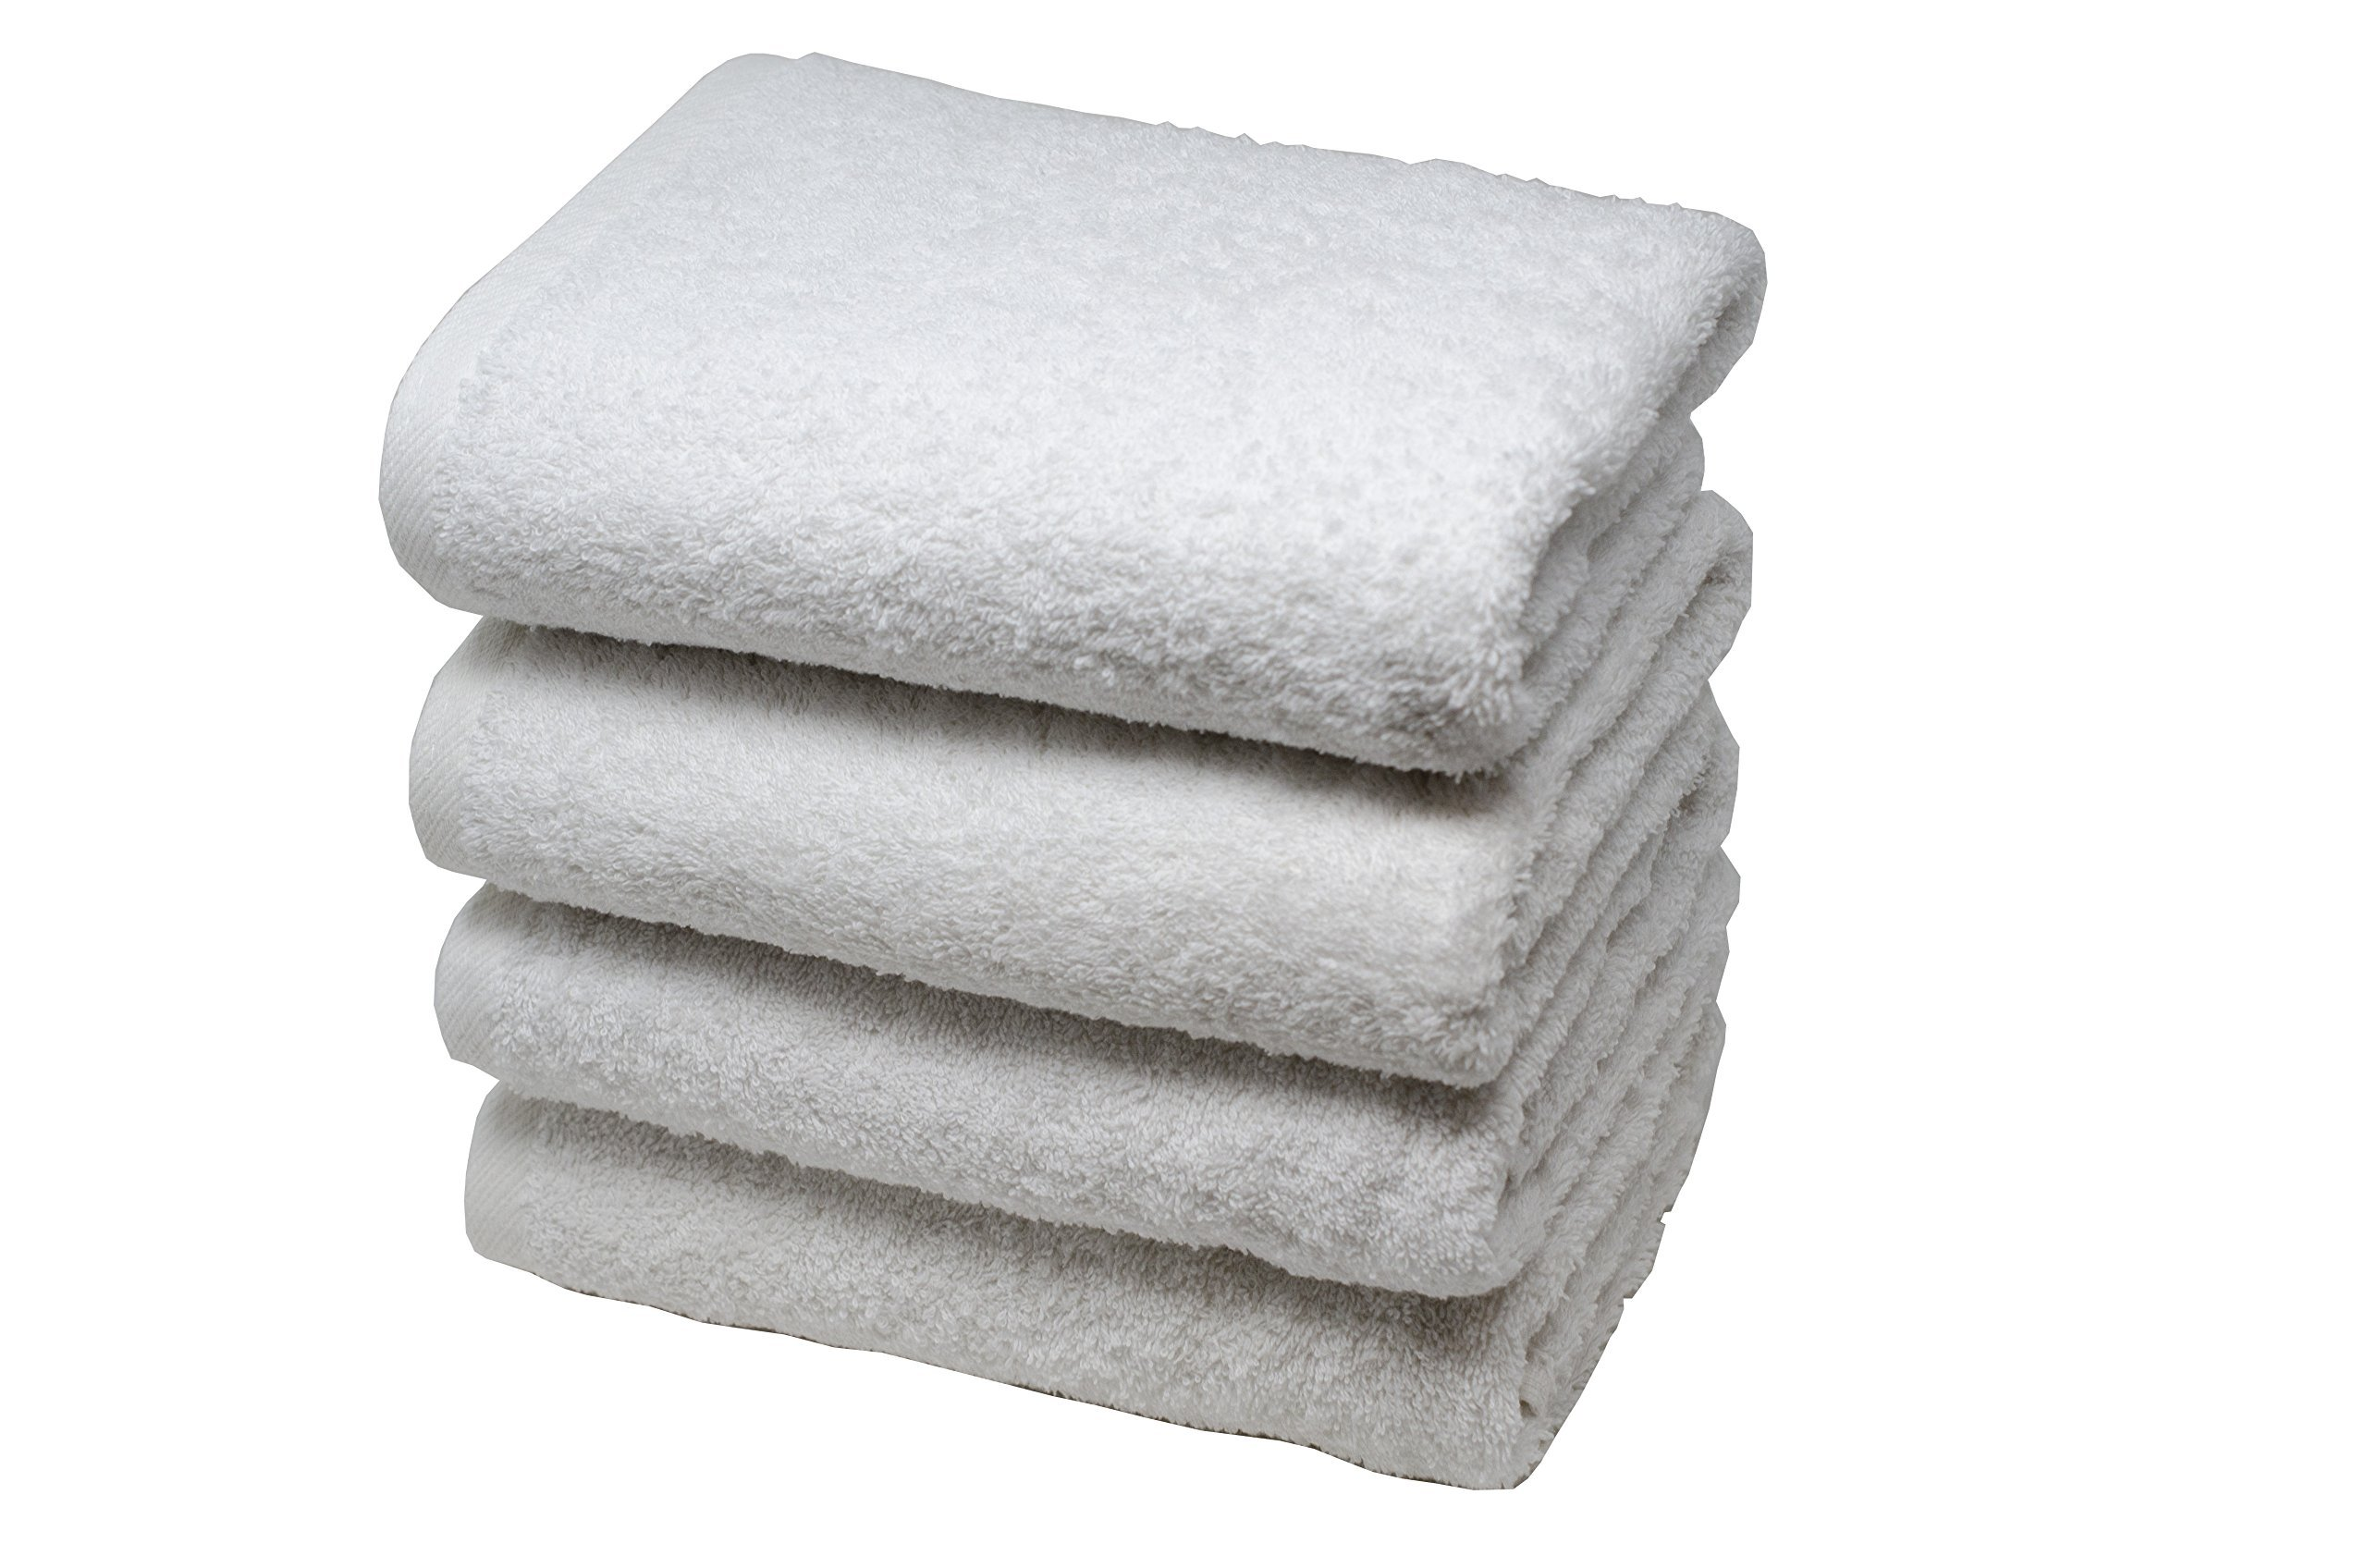 100% Turkish Cotton Extra Large (20 x 35 inch) Hand Towel Set of 4 Spa, Gym, Hammam, Fitness Sport, Oversized, XL, Large, Huge Big Size Hand Towel, Premium Class, Luxury Hotel Series